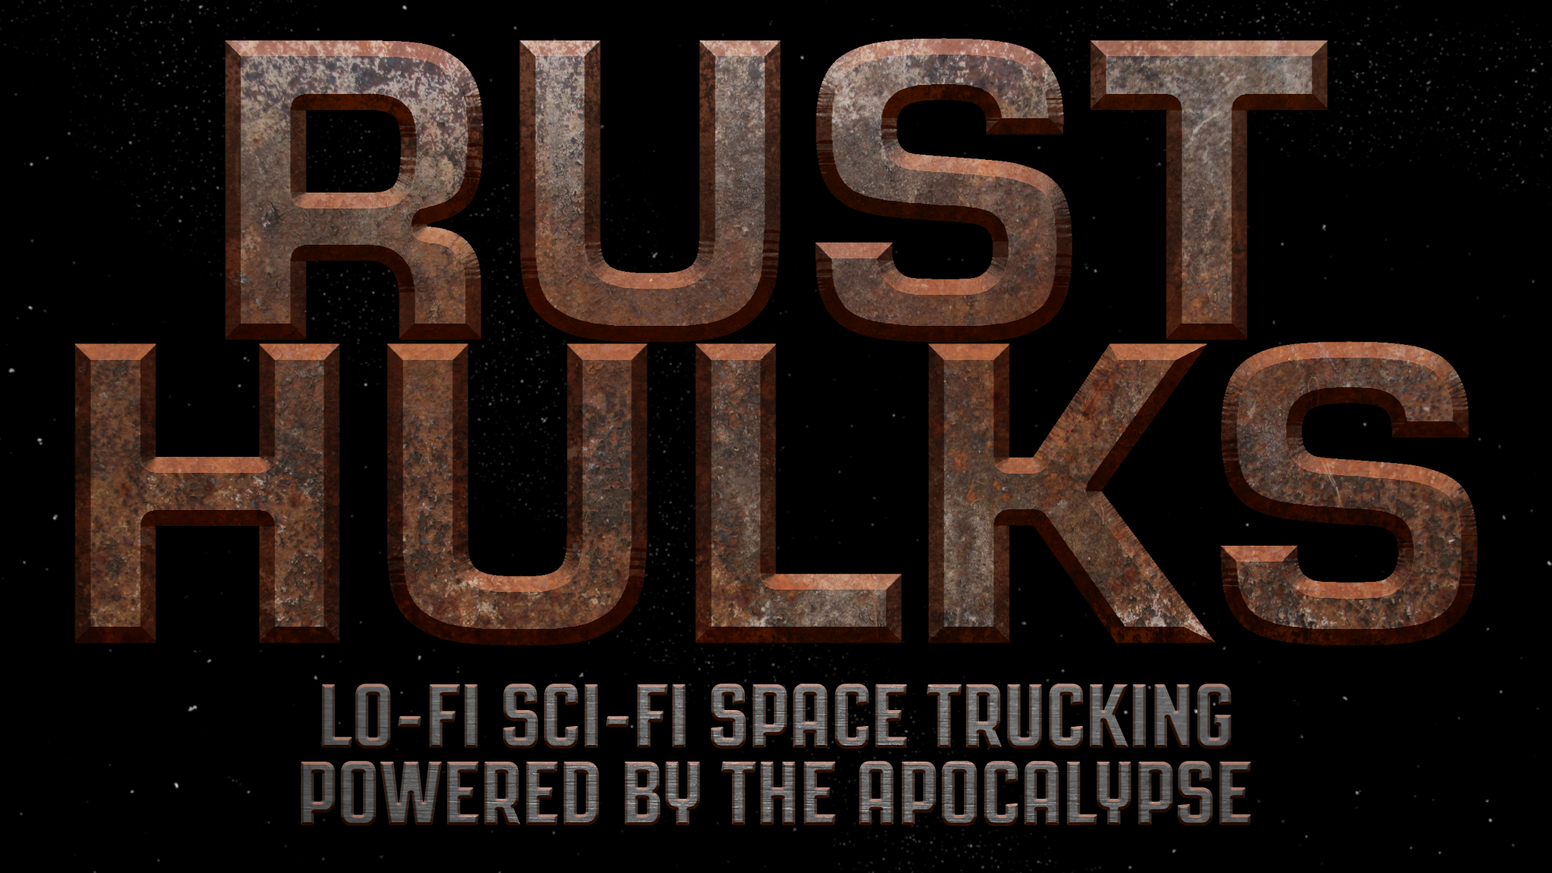 A lo-fi sci-fi space trucking tabletop RPG, Powered by the Apocalypse.